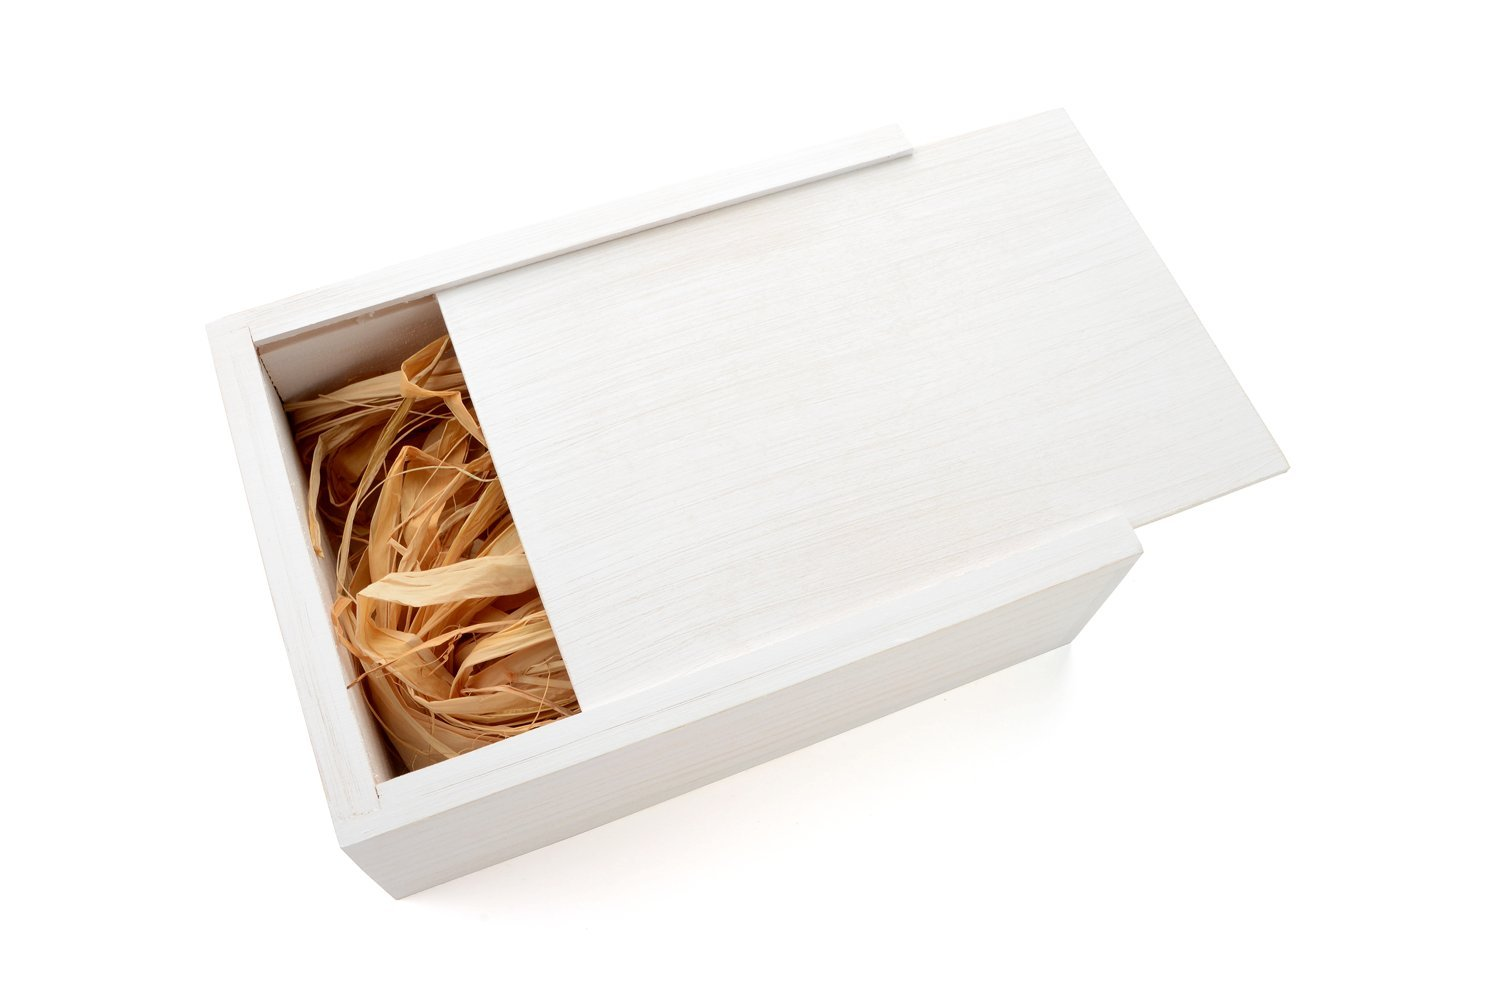 Wedding White 4 x 6 Picture Box - Holds up to 125 4 x 6 Photos - Filled with Raffia Grass by Samedayflash